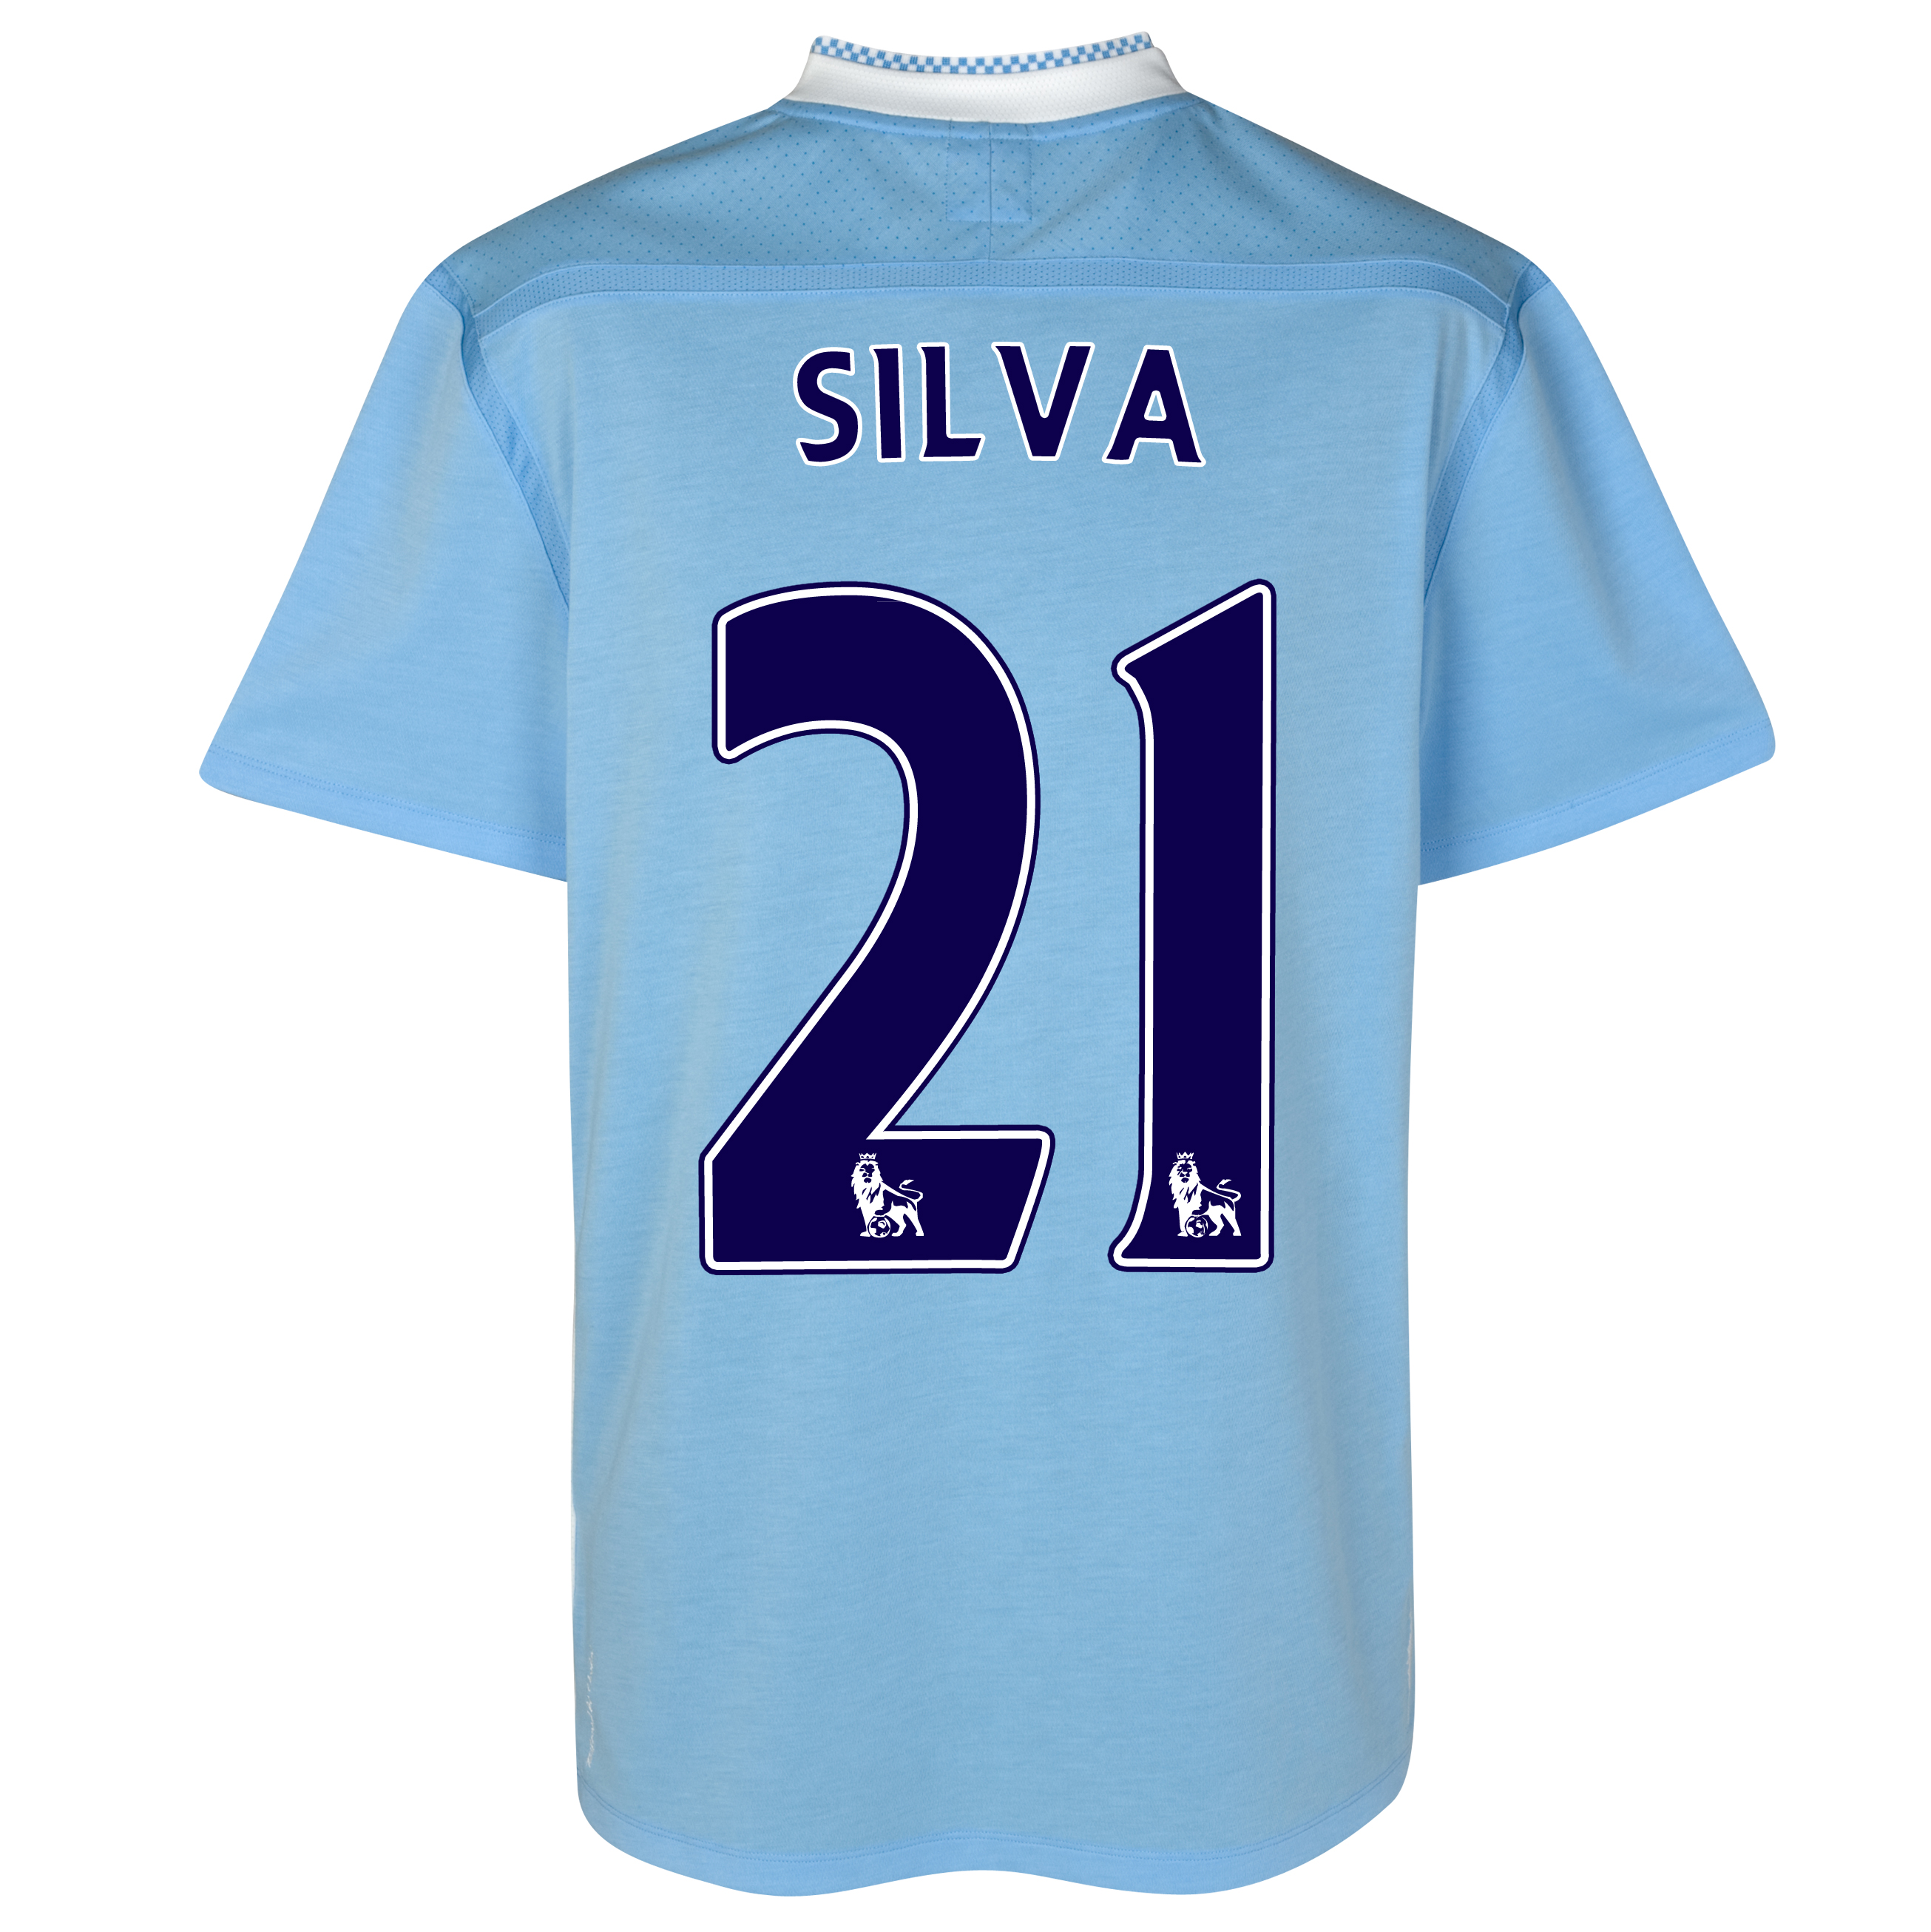 Manchester City Home Shirt 2011/12 with Silva 21 printing